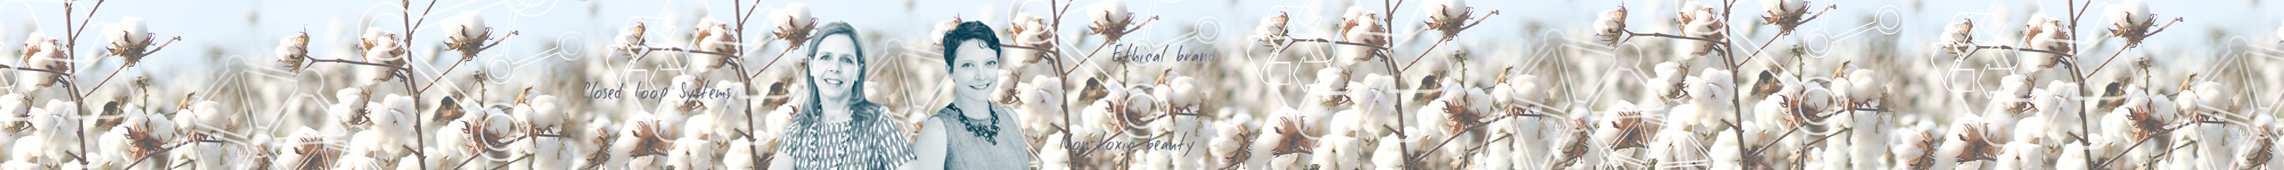 Fashion and sustainability web banner